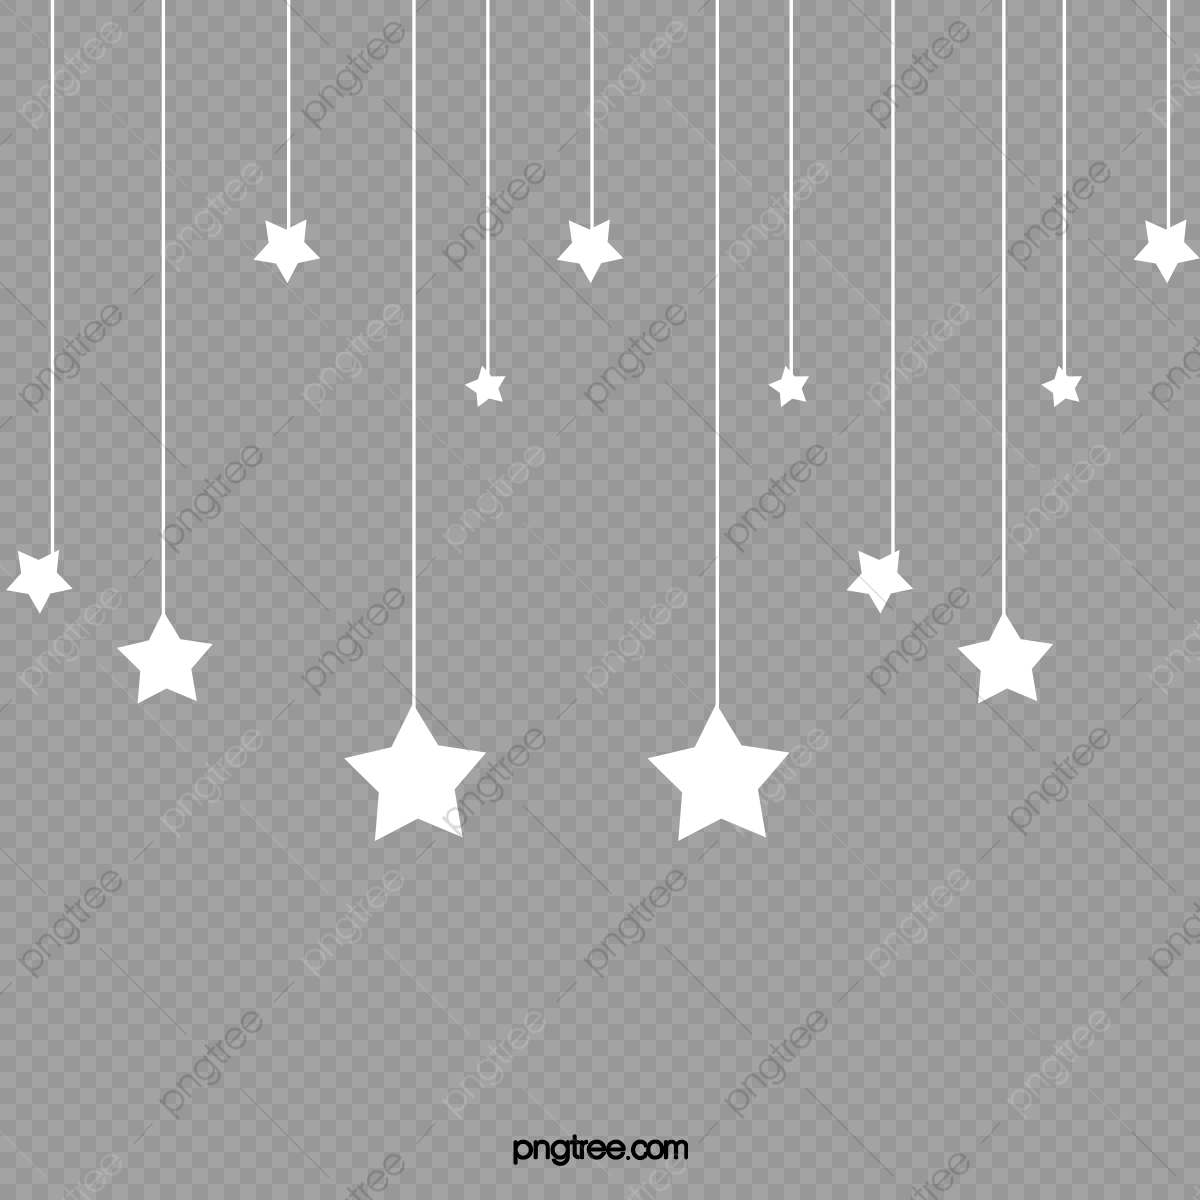 Hanging Stars, Web Page, Star, Material PNG Transparent Clipart.